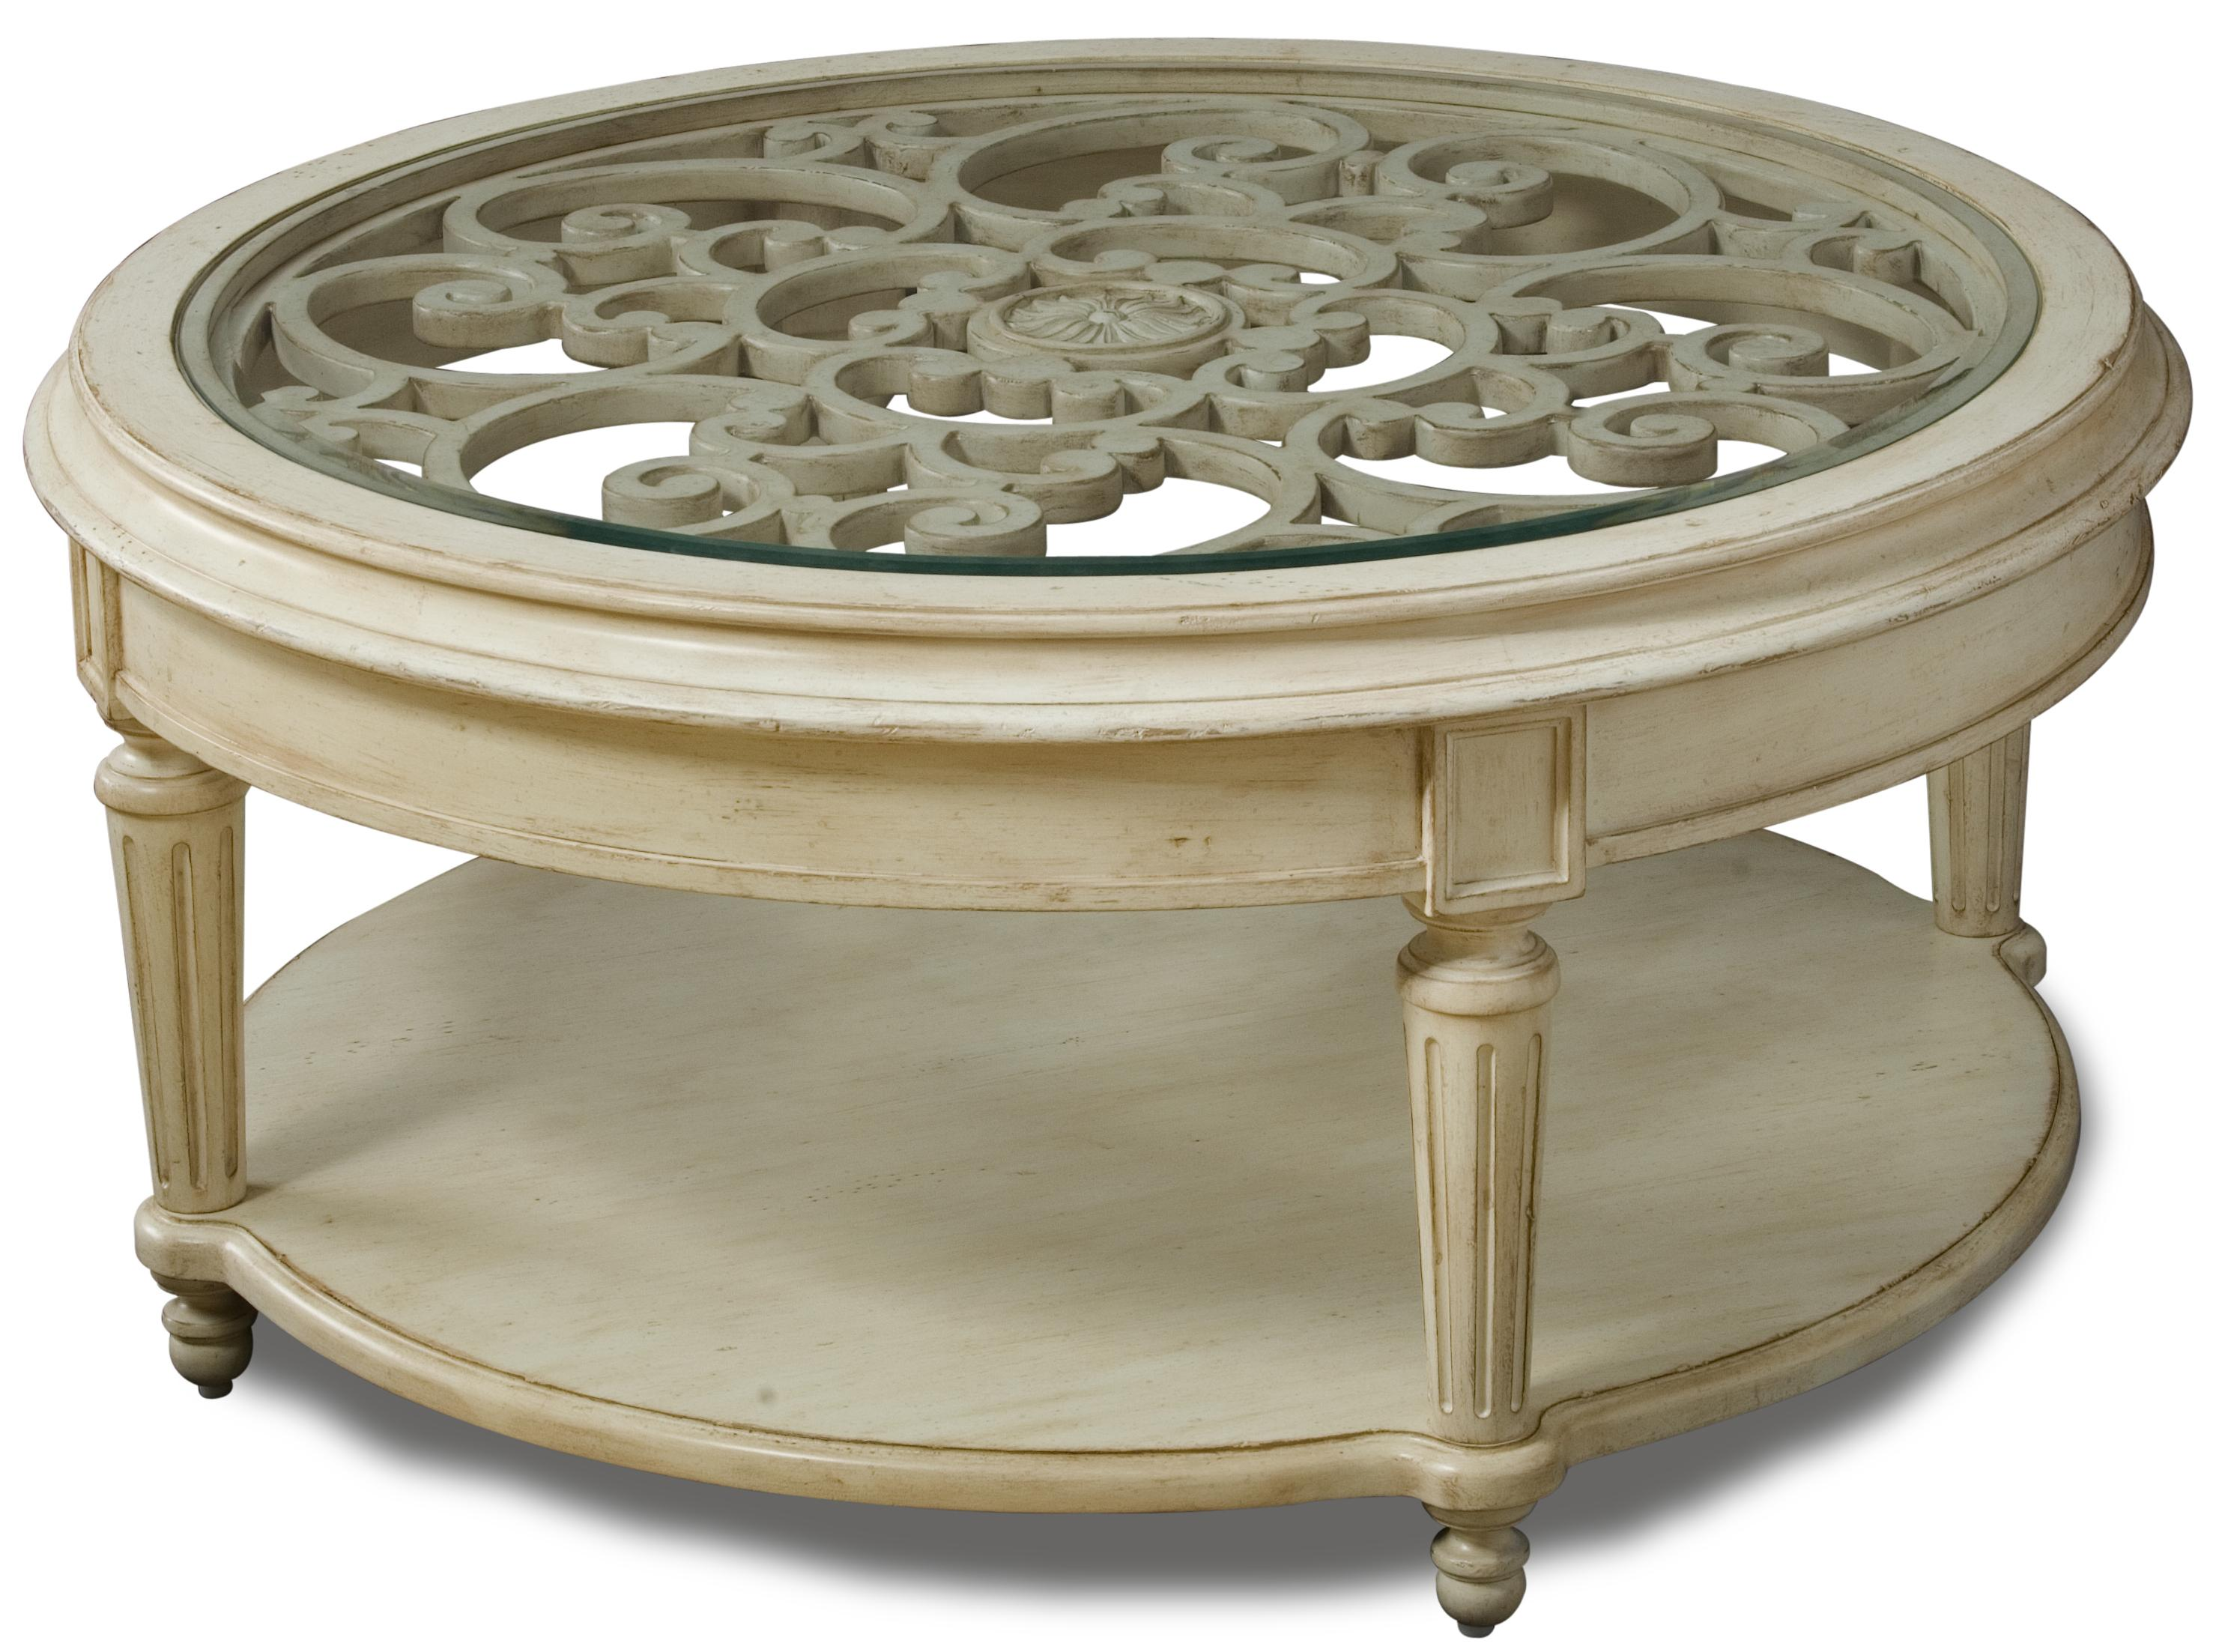 Carved Round Cocktail Table with Glass Top by A R T Furniture Inc